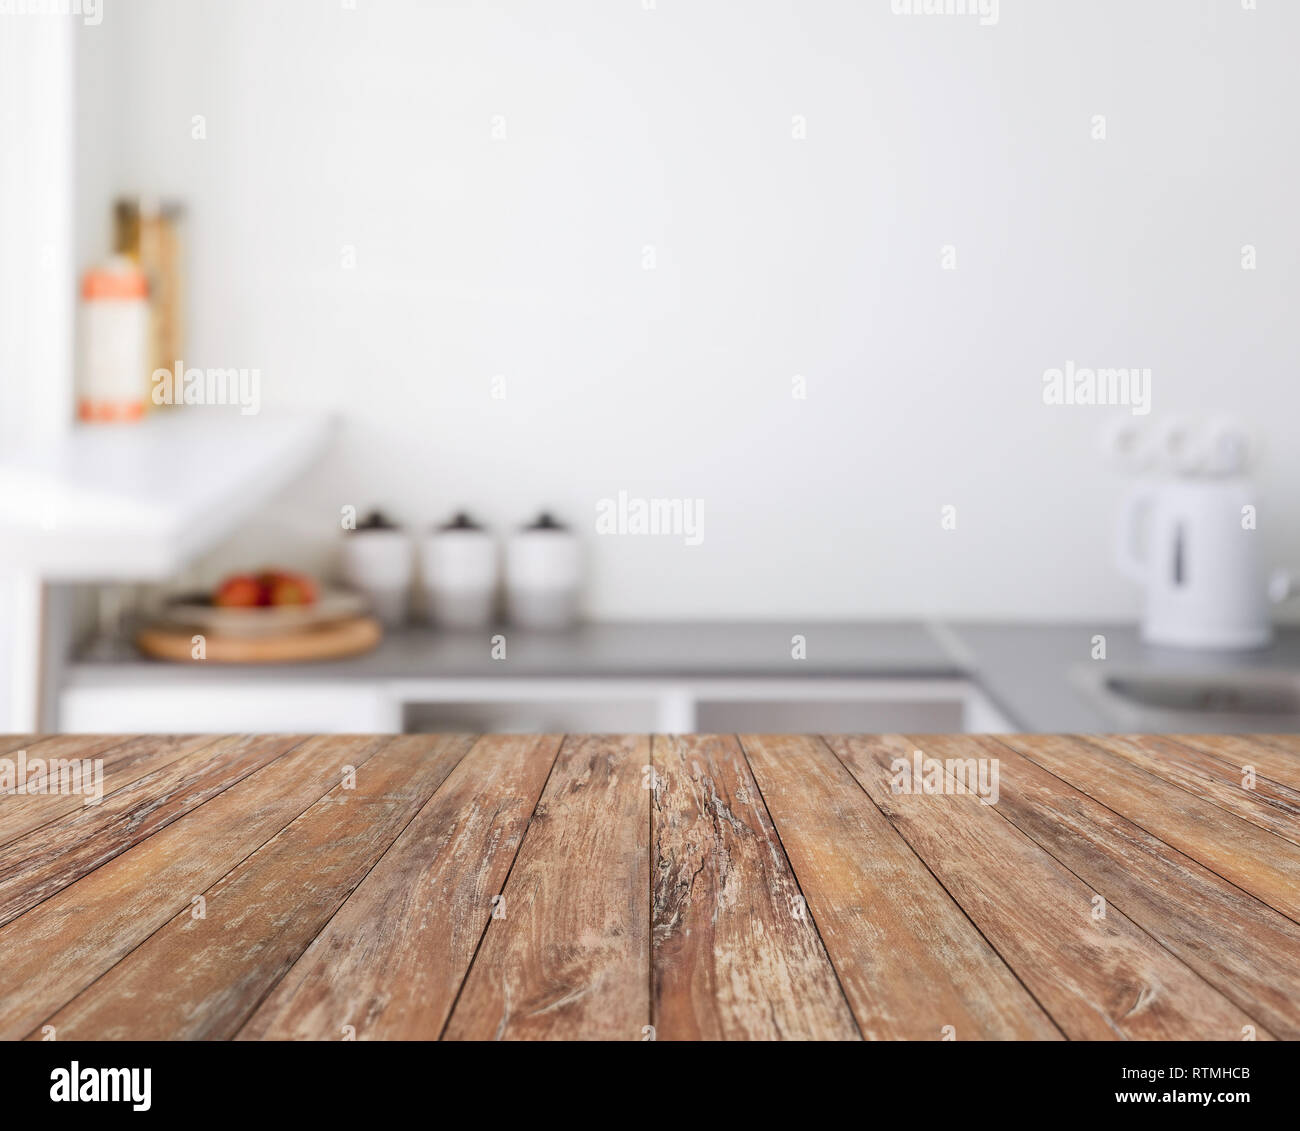 Blurred Kitchen Background With Wooden Boards Stock Photo Alamy